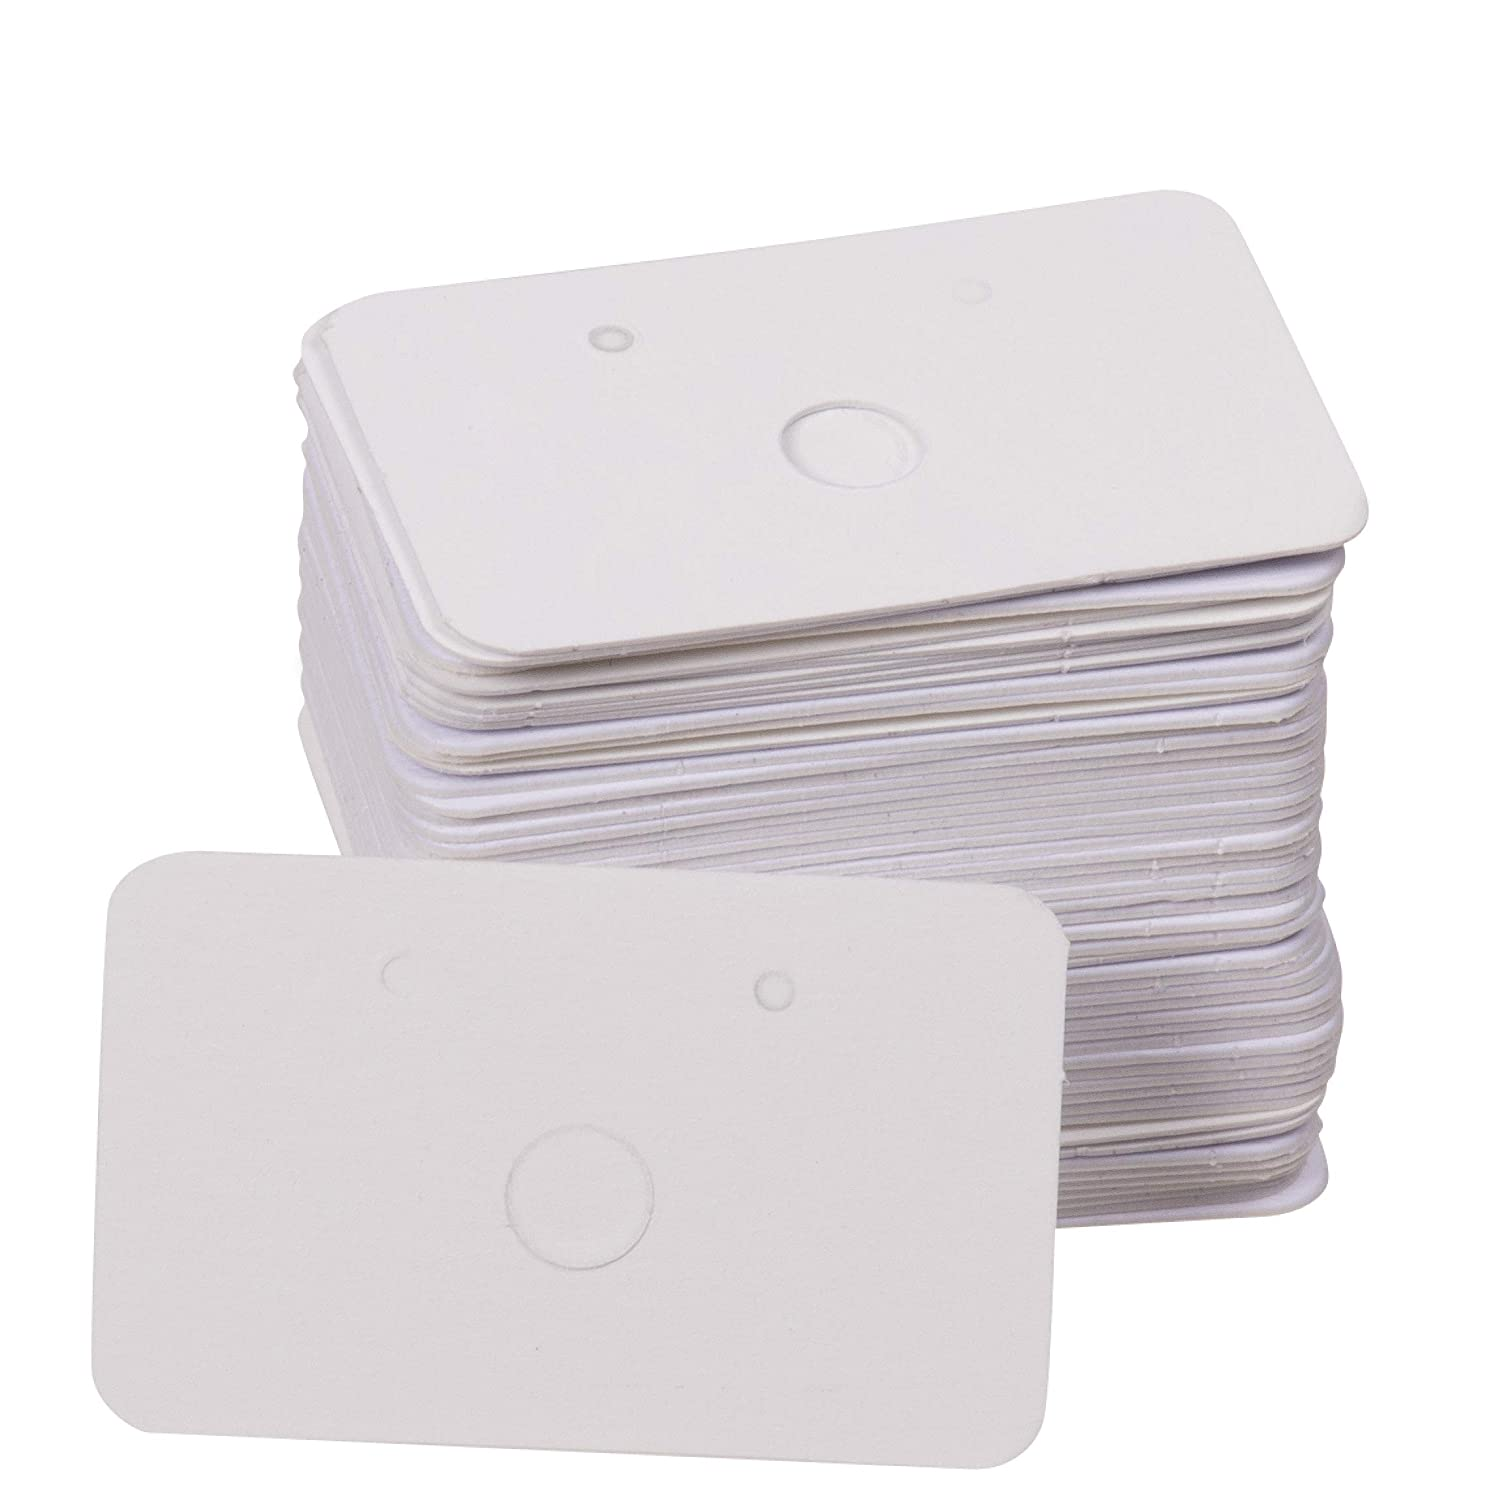 White 1.6 x 1 Inches Paper Hanging Jewelry Display Cards for Earrings Earring Cards Ear Studs 300-Pack Earring Card Holder